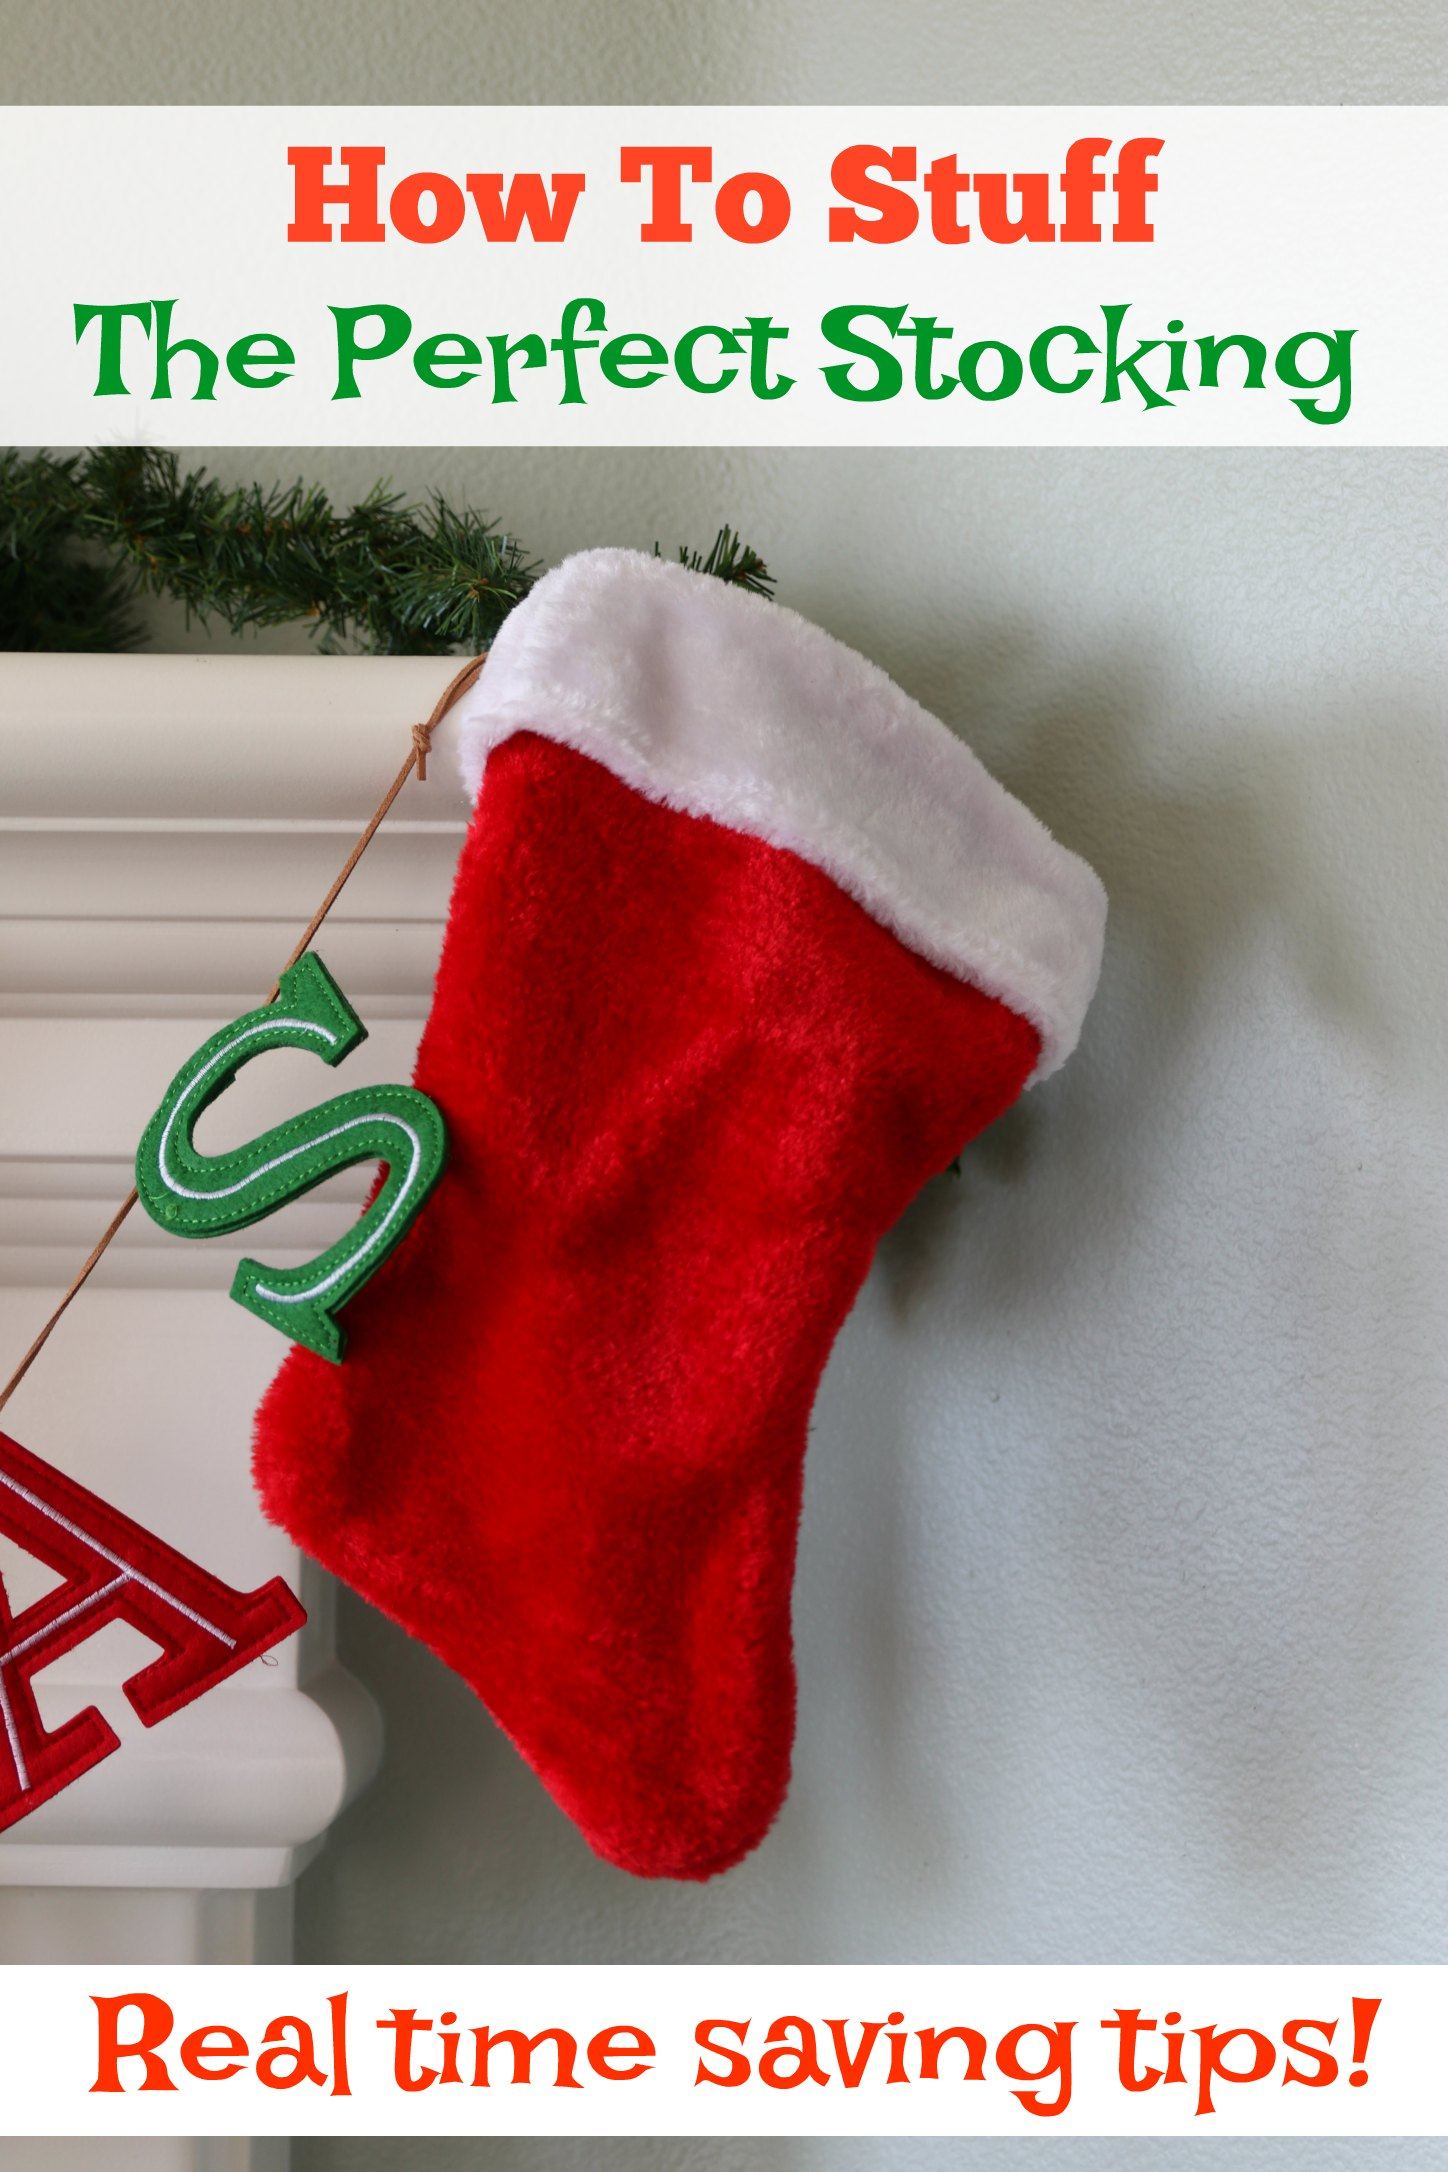 How To Stuff The Perfect Stocking Real Time Saving Tips